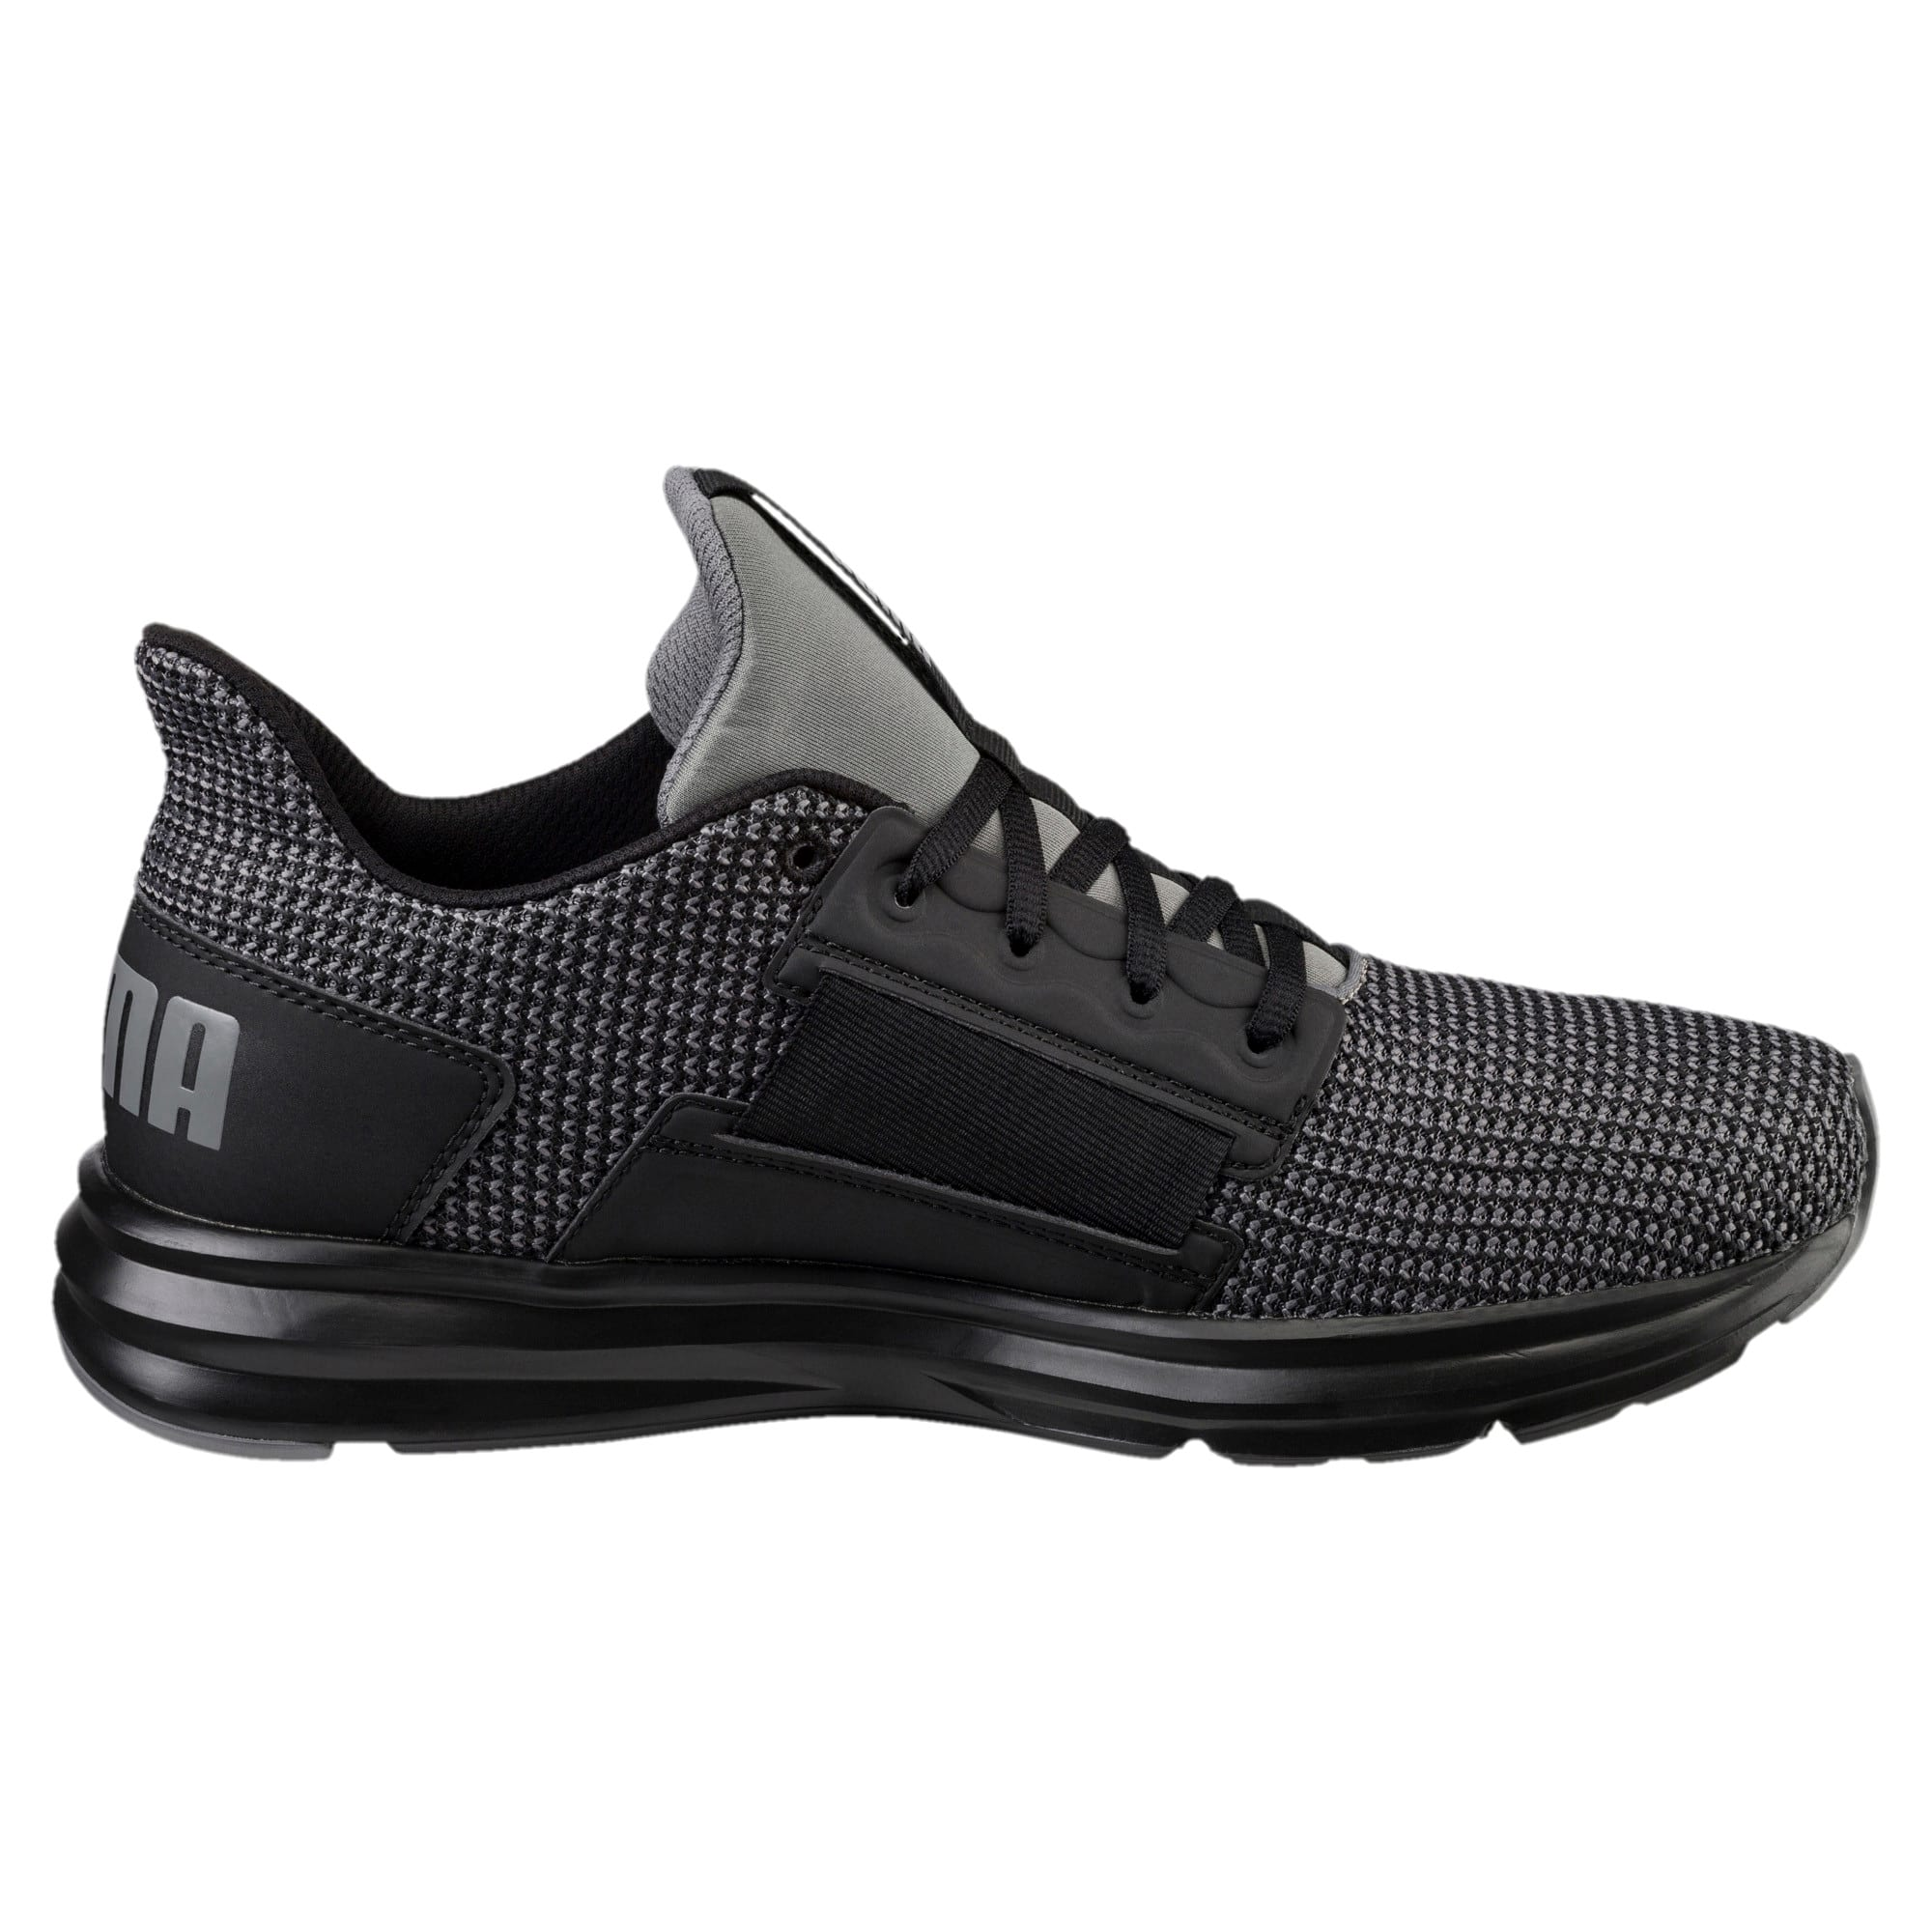 Thumbnail 3 of Enzo Street Knit Men's Running Shoes, QUIET SHADE-Puma Black, medium